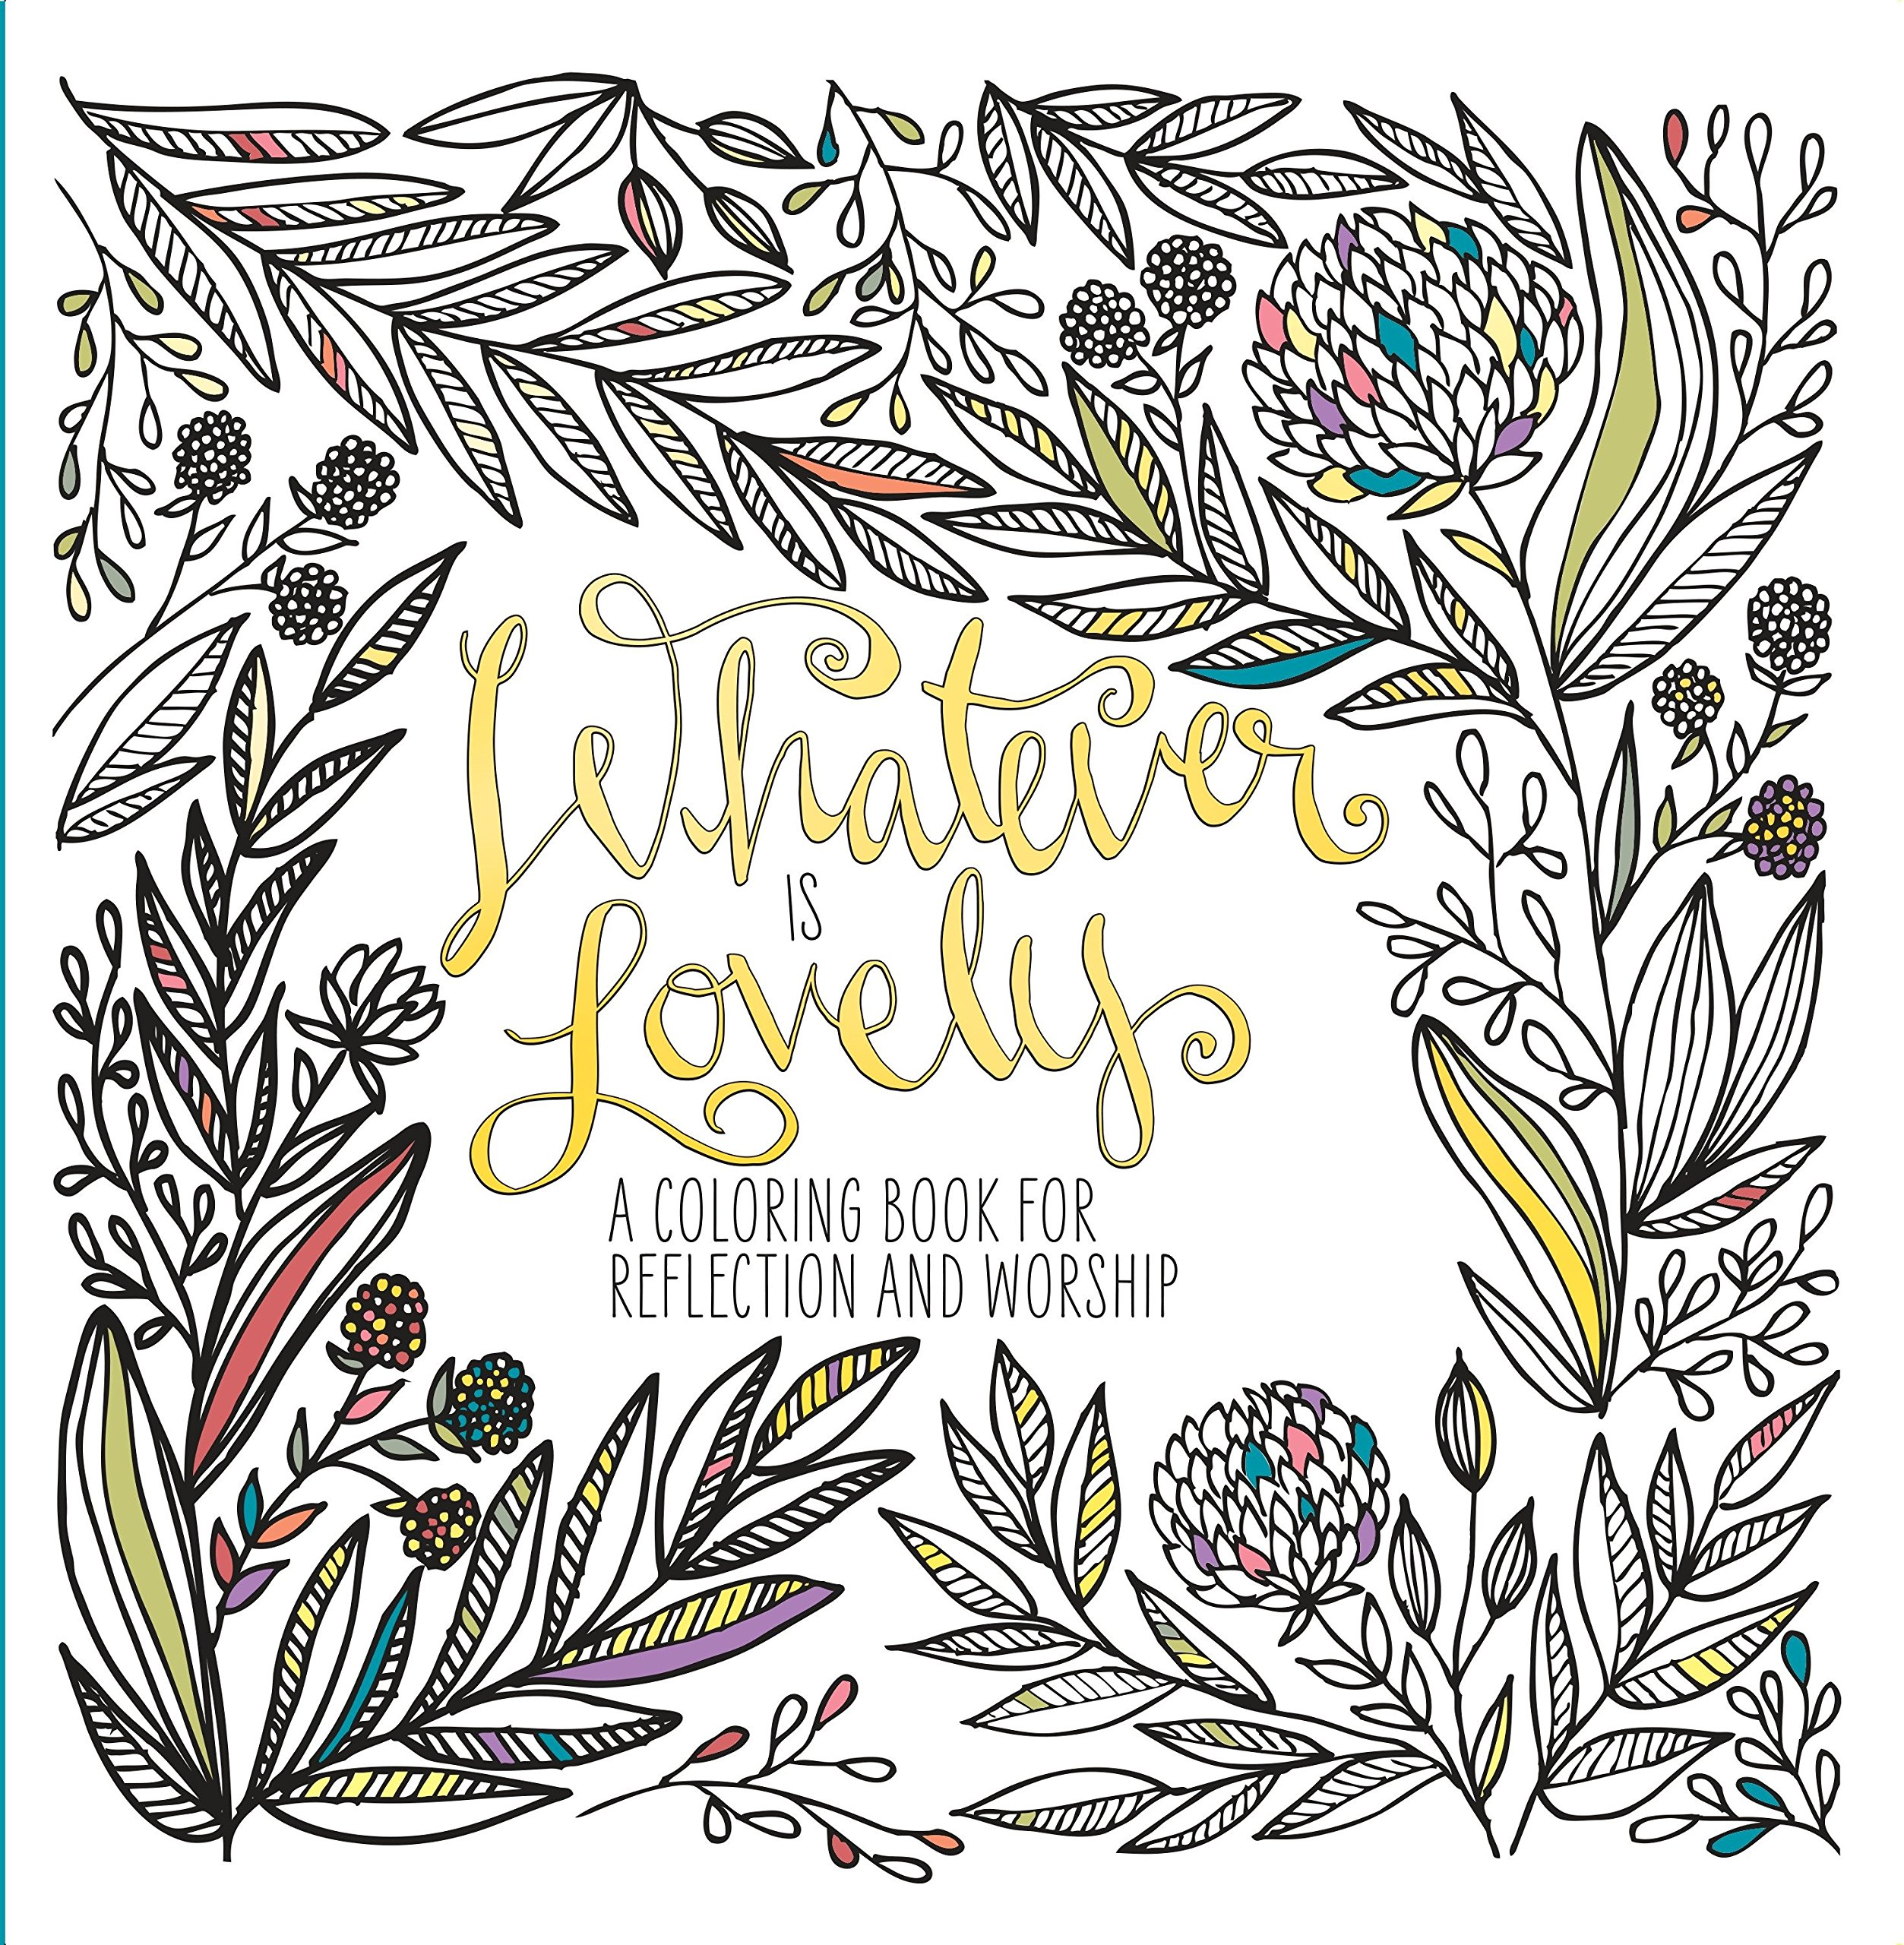 Whatever Is Lovely A Coloring Book For Reflection And Worship WaterBrook 9781601429285 Amazon Books